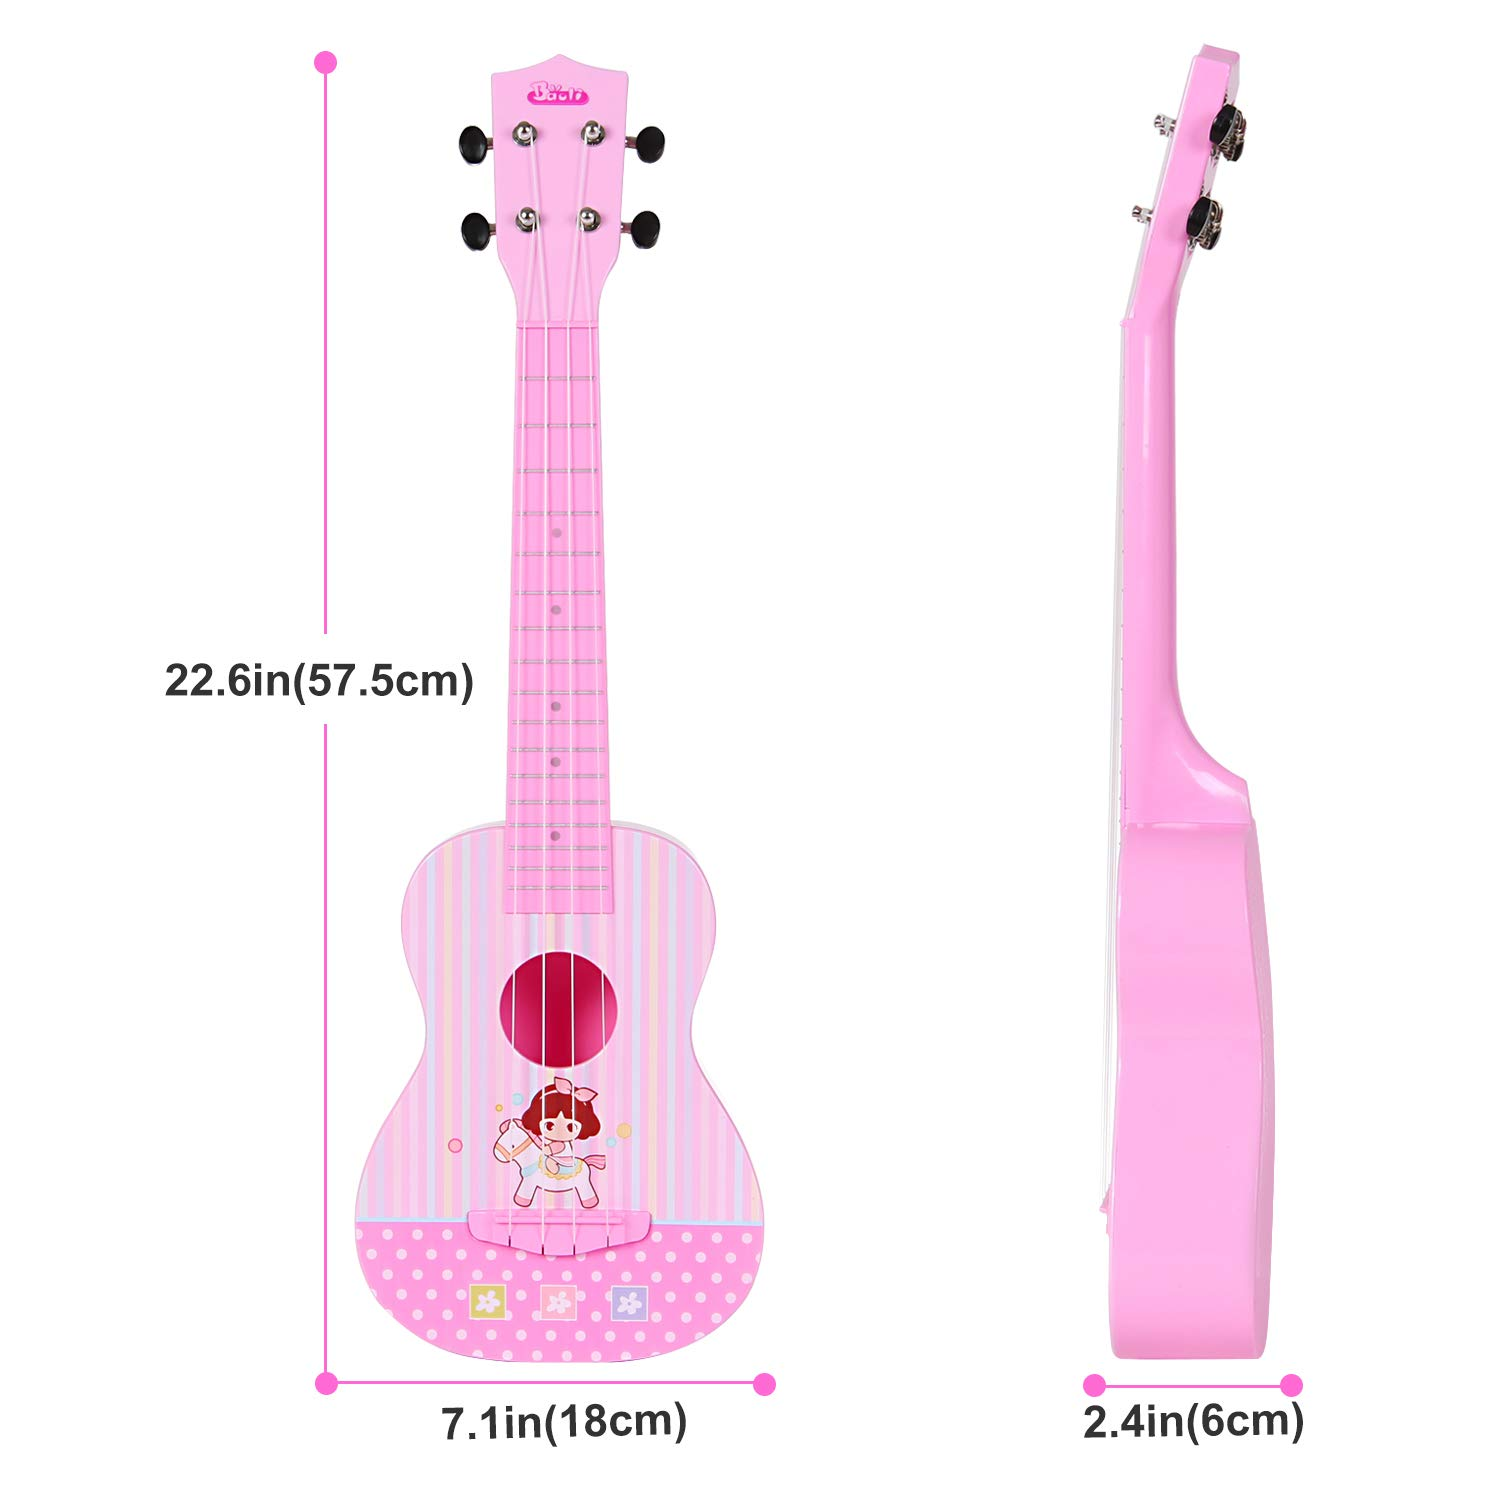 Amazon.com: Ukulele Guitar Toy, 4 Strings Musical Instrument for Girl Boy Toddler Beginner with APP Control: Toys & Games